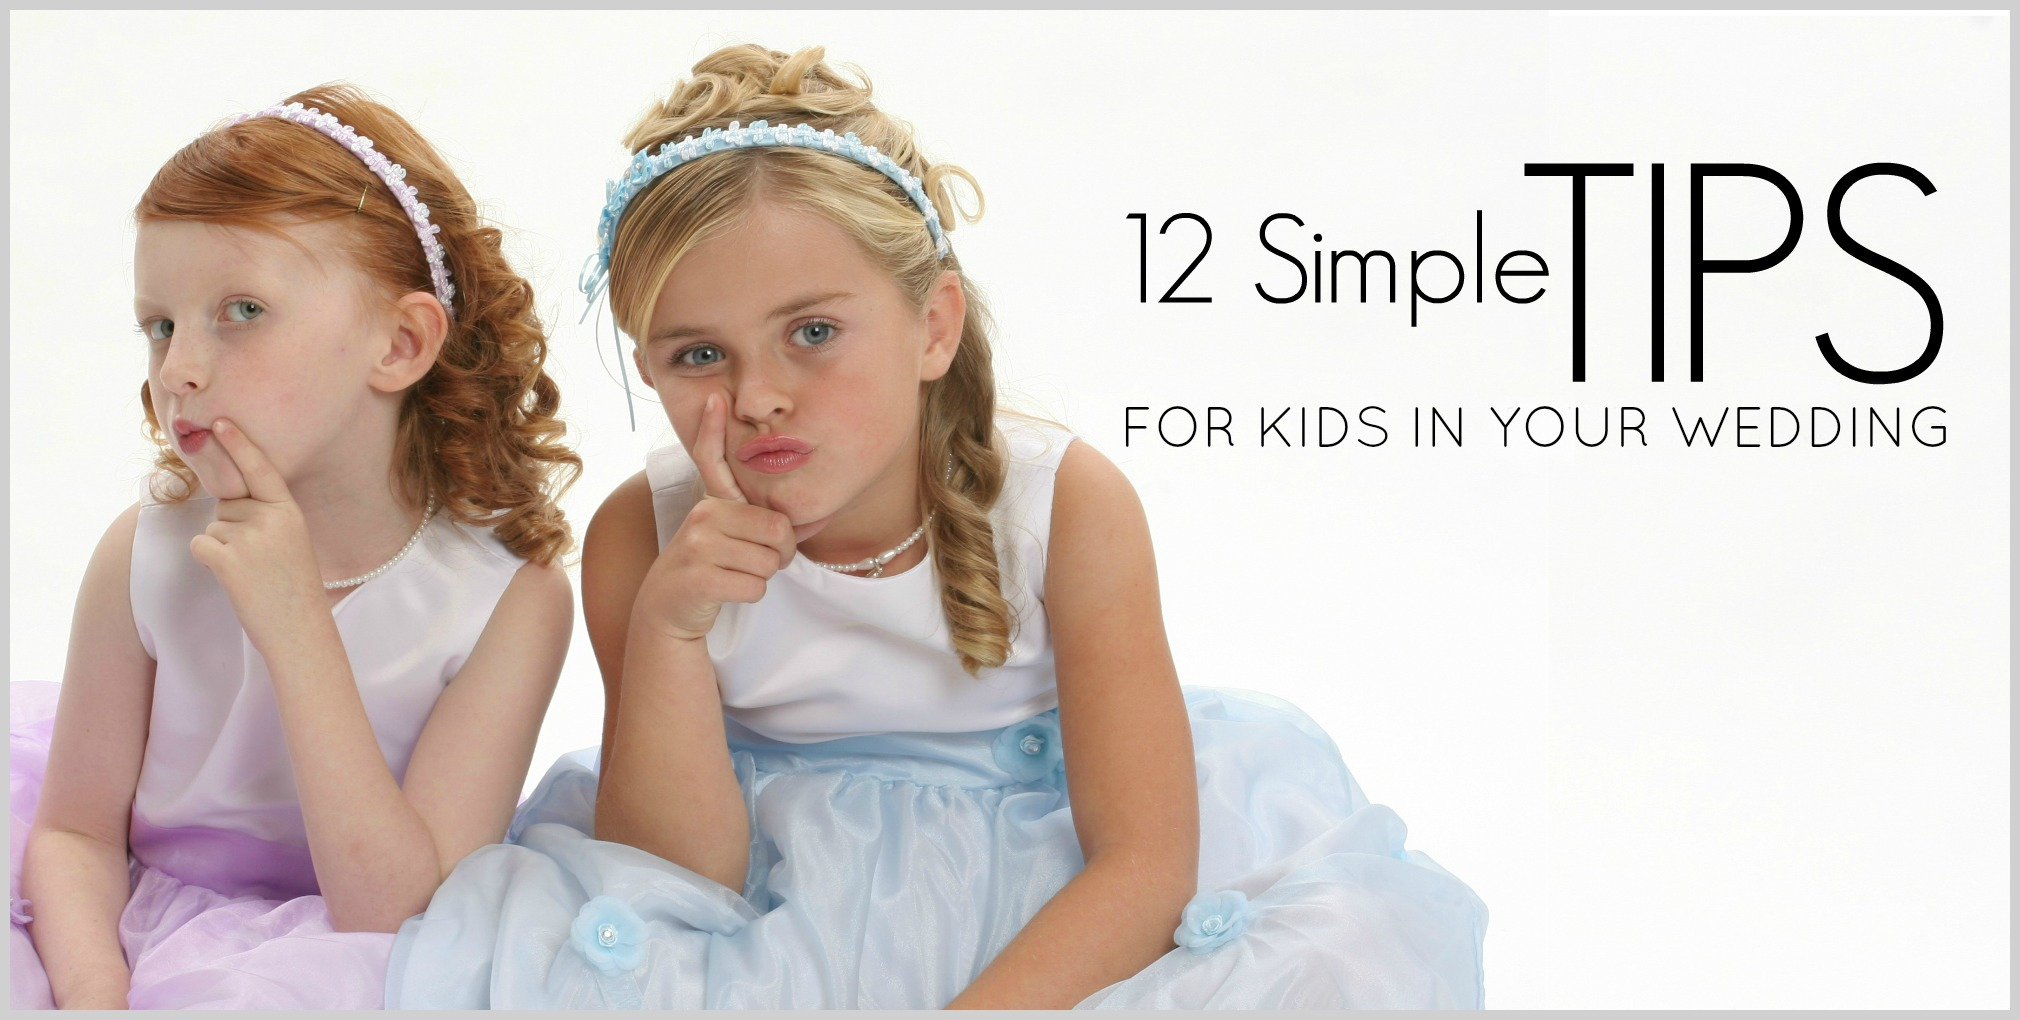 12 Simple Tips for Kids in Your Wedding